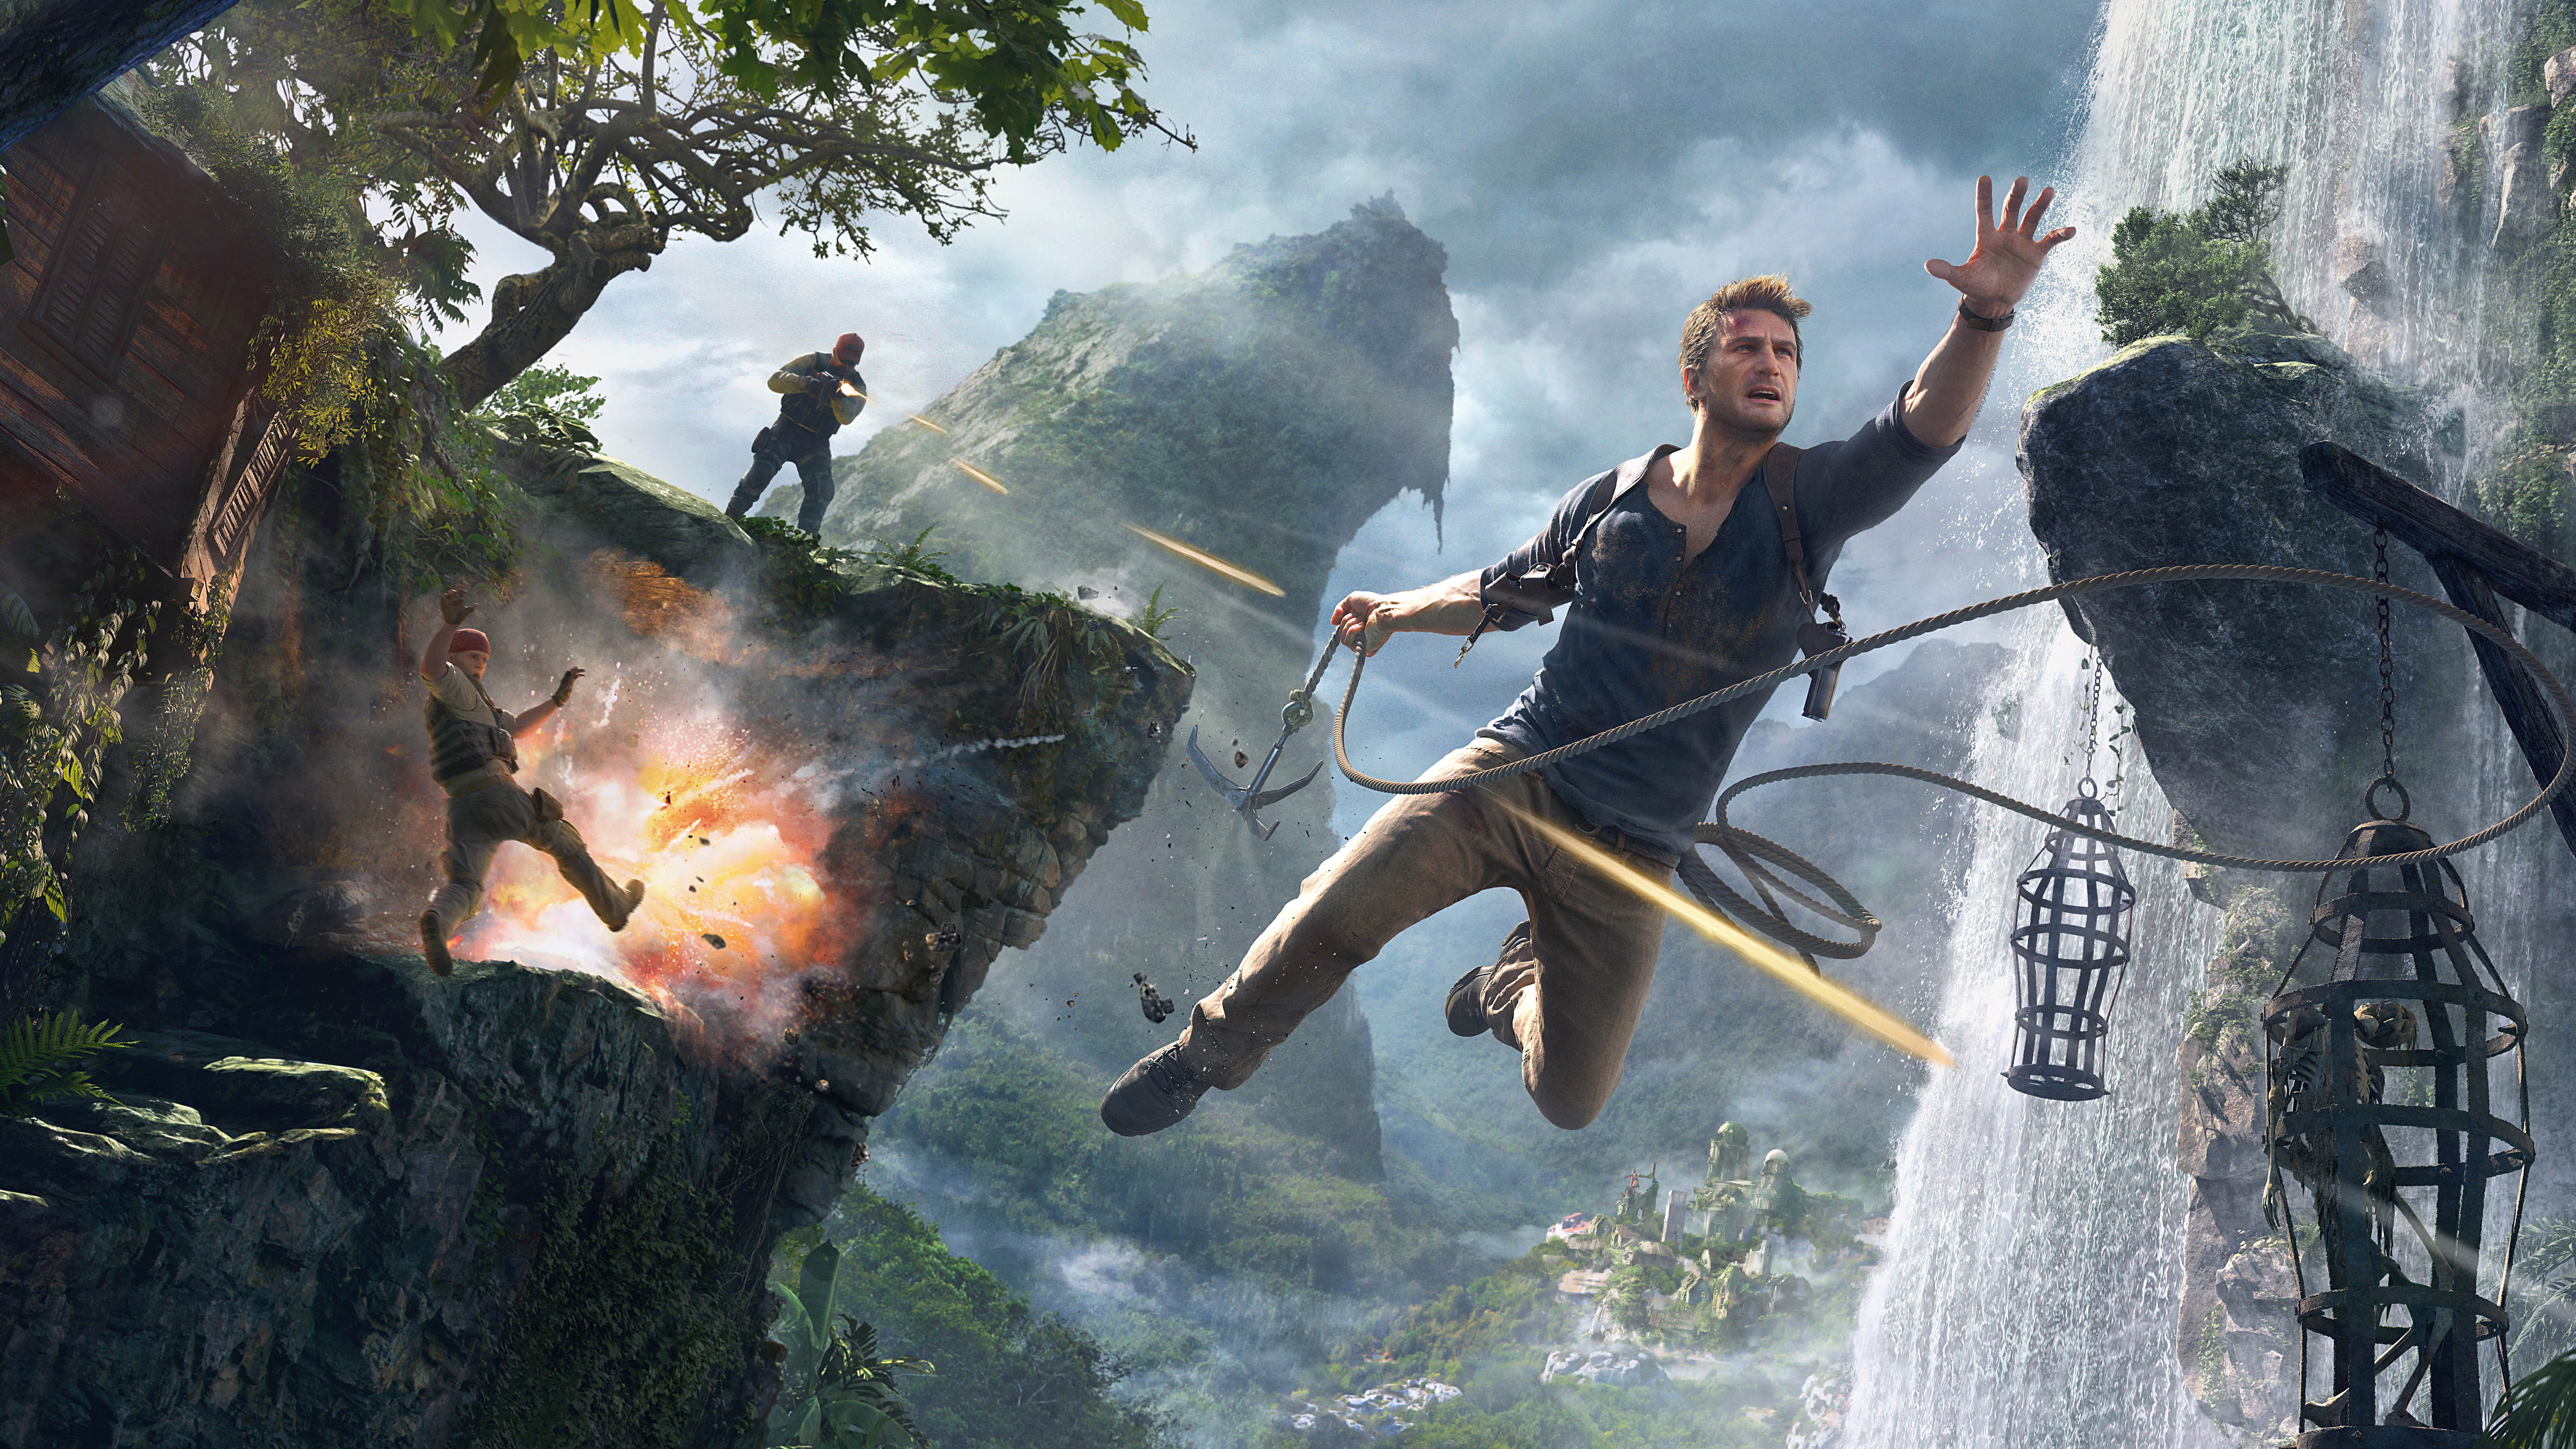 uncharted 4 a thief's end 4k 8k hd wallpapers in jpg format for free